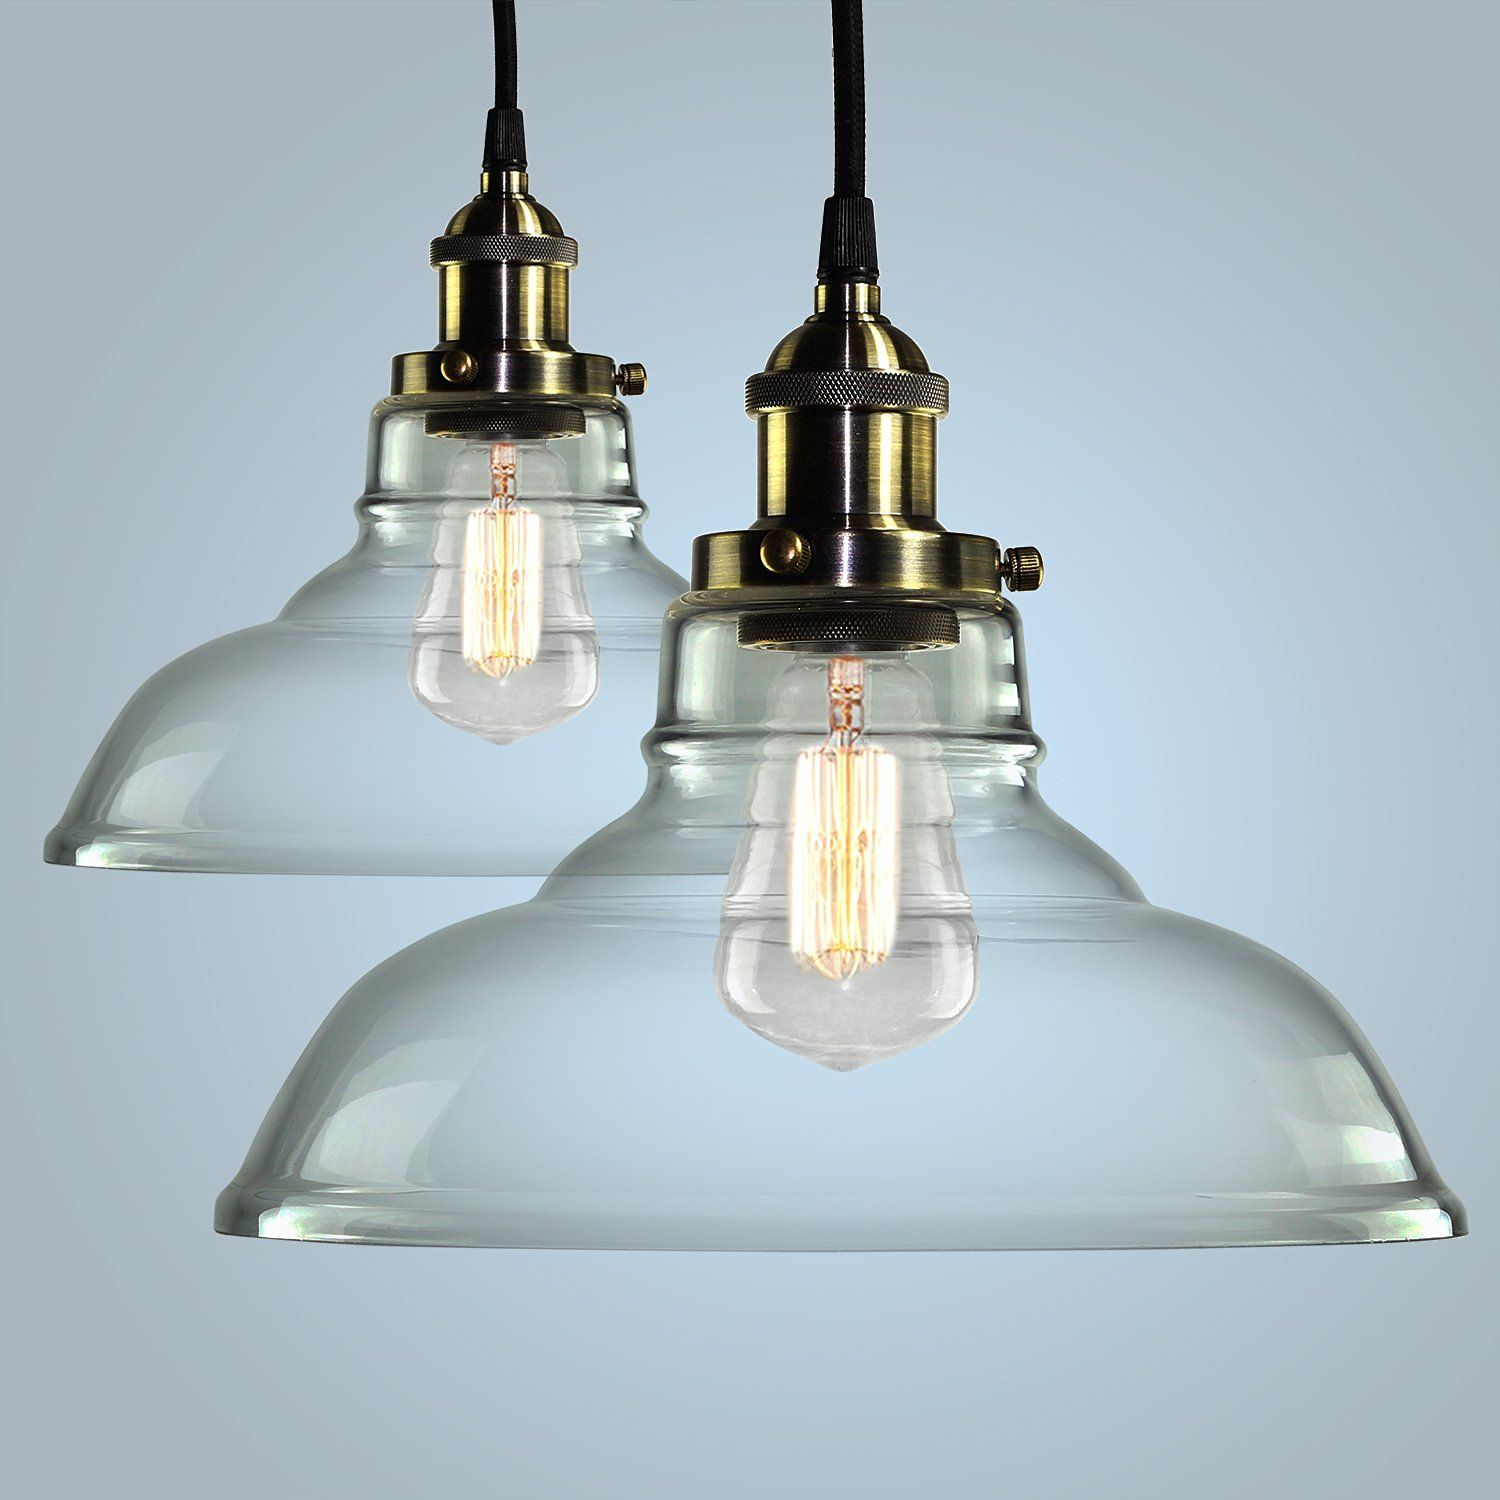 Pendant Light Hanging Glass Ceiling Mounted Chandelier